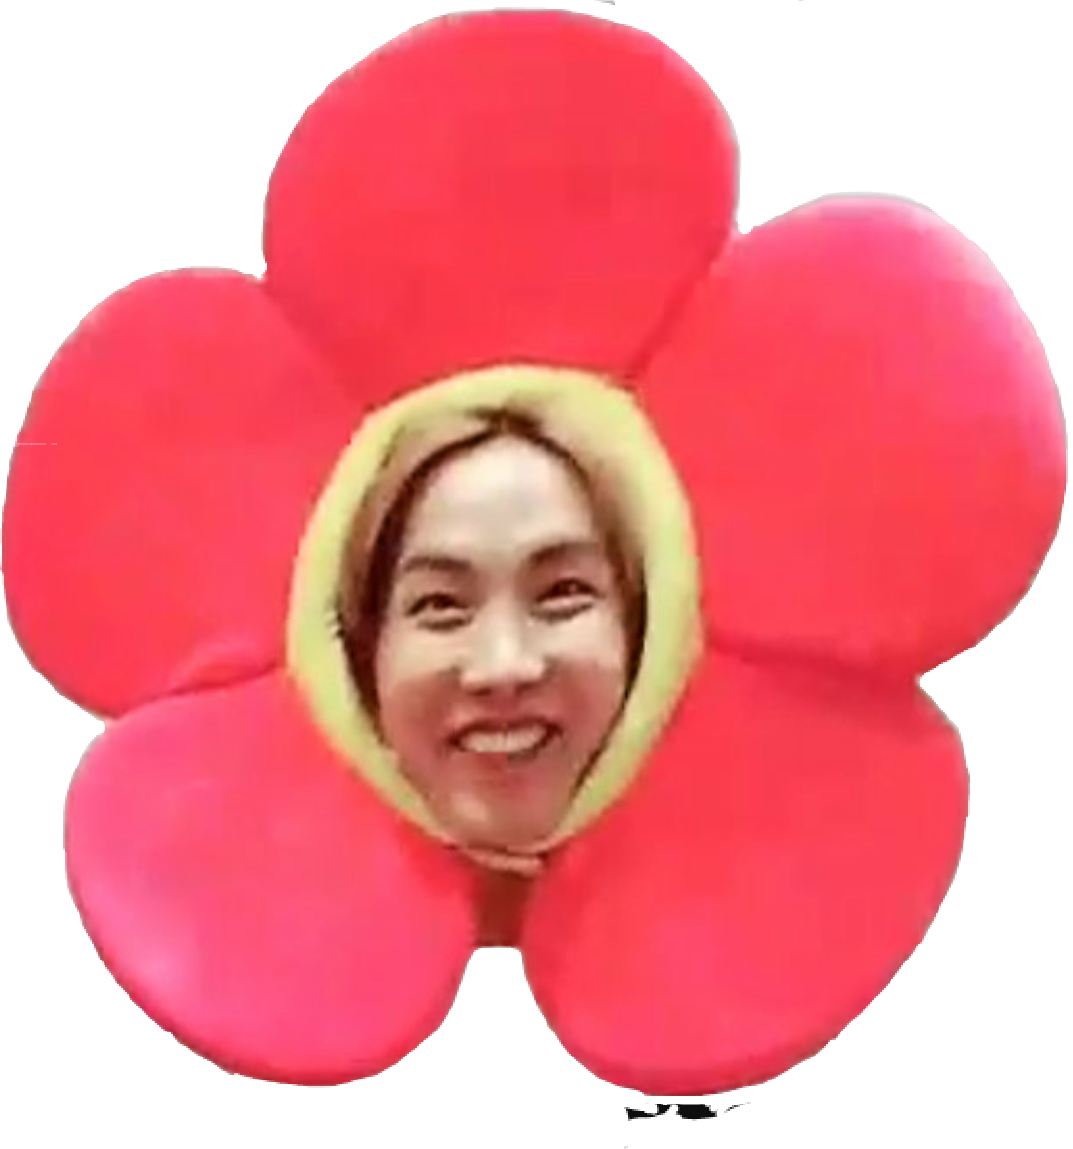 jhope flower bts jhopebts jflowers edit funny funny face clip art images funny face clipart